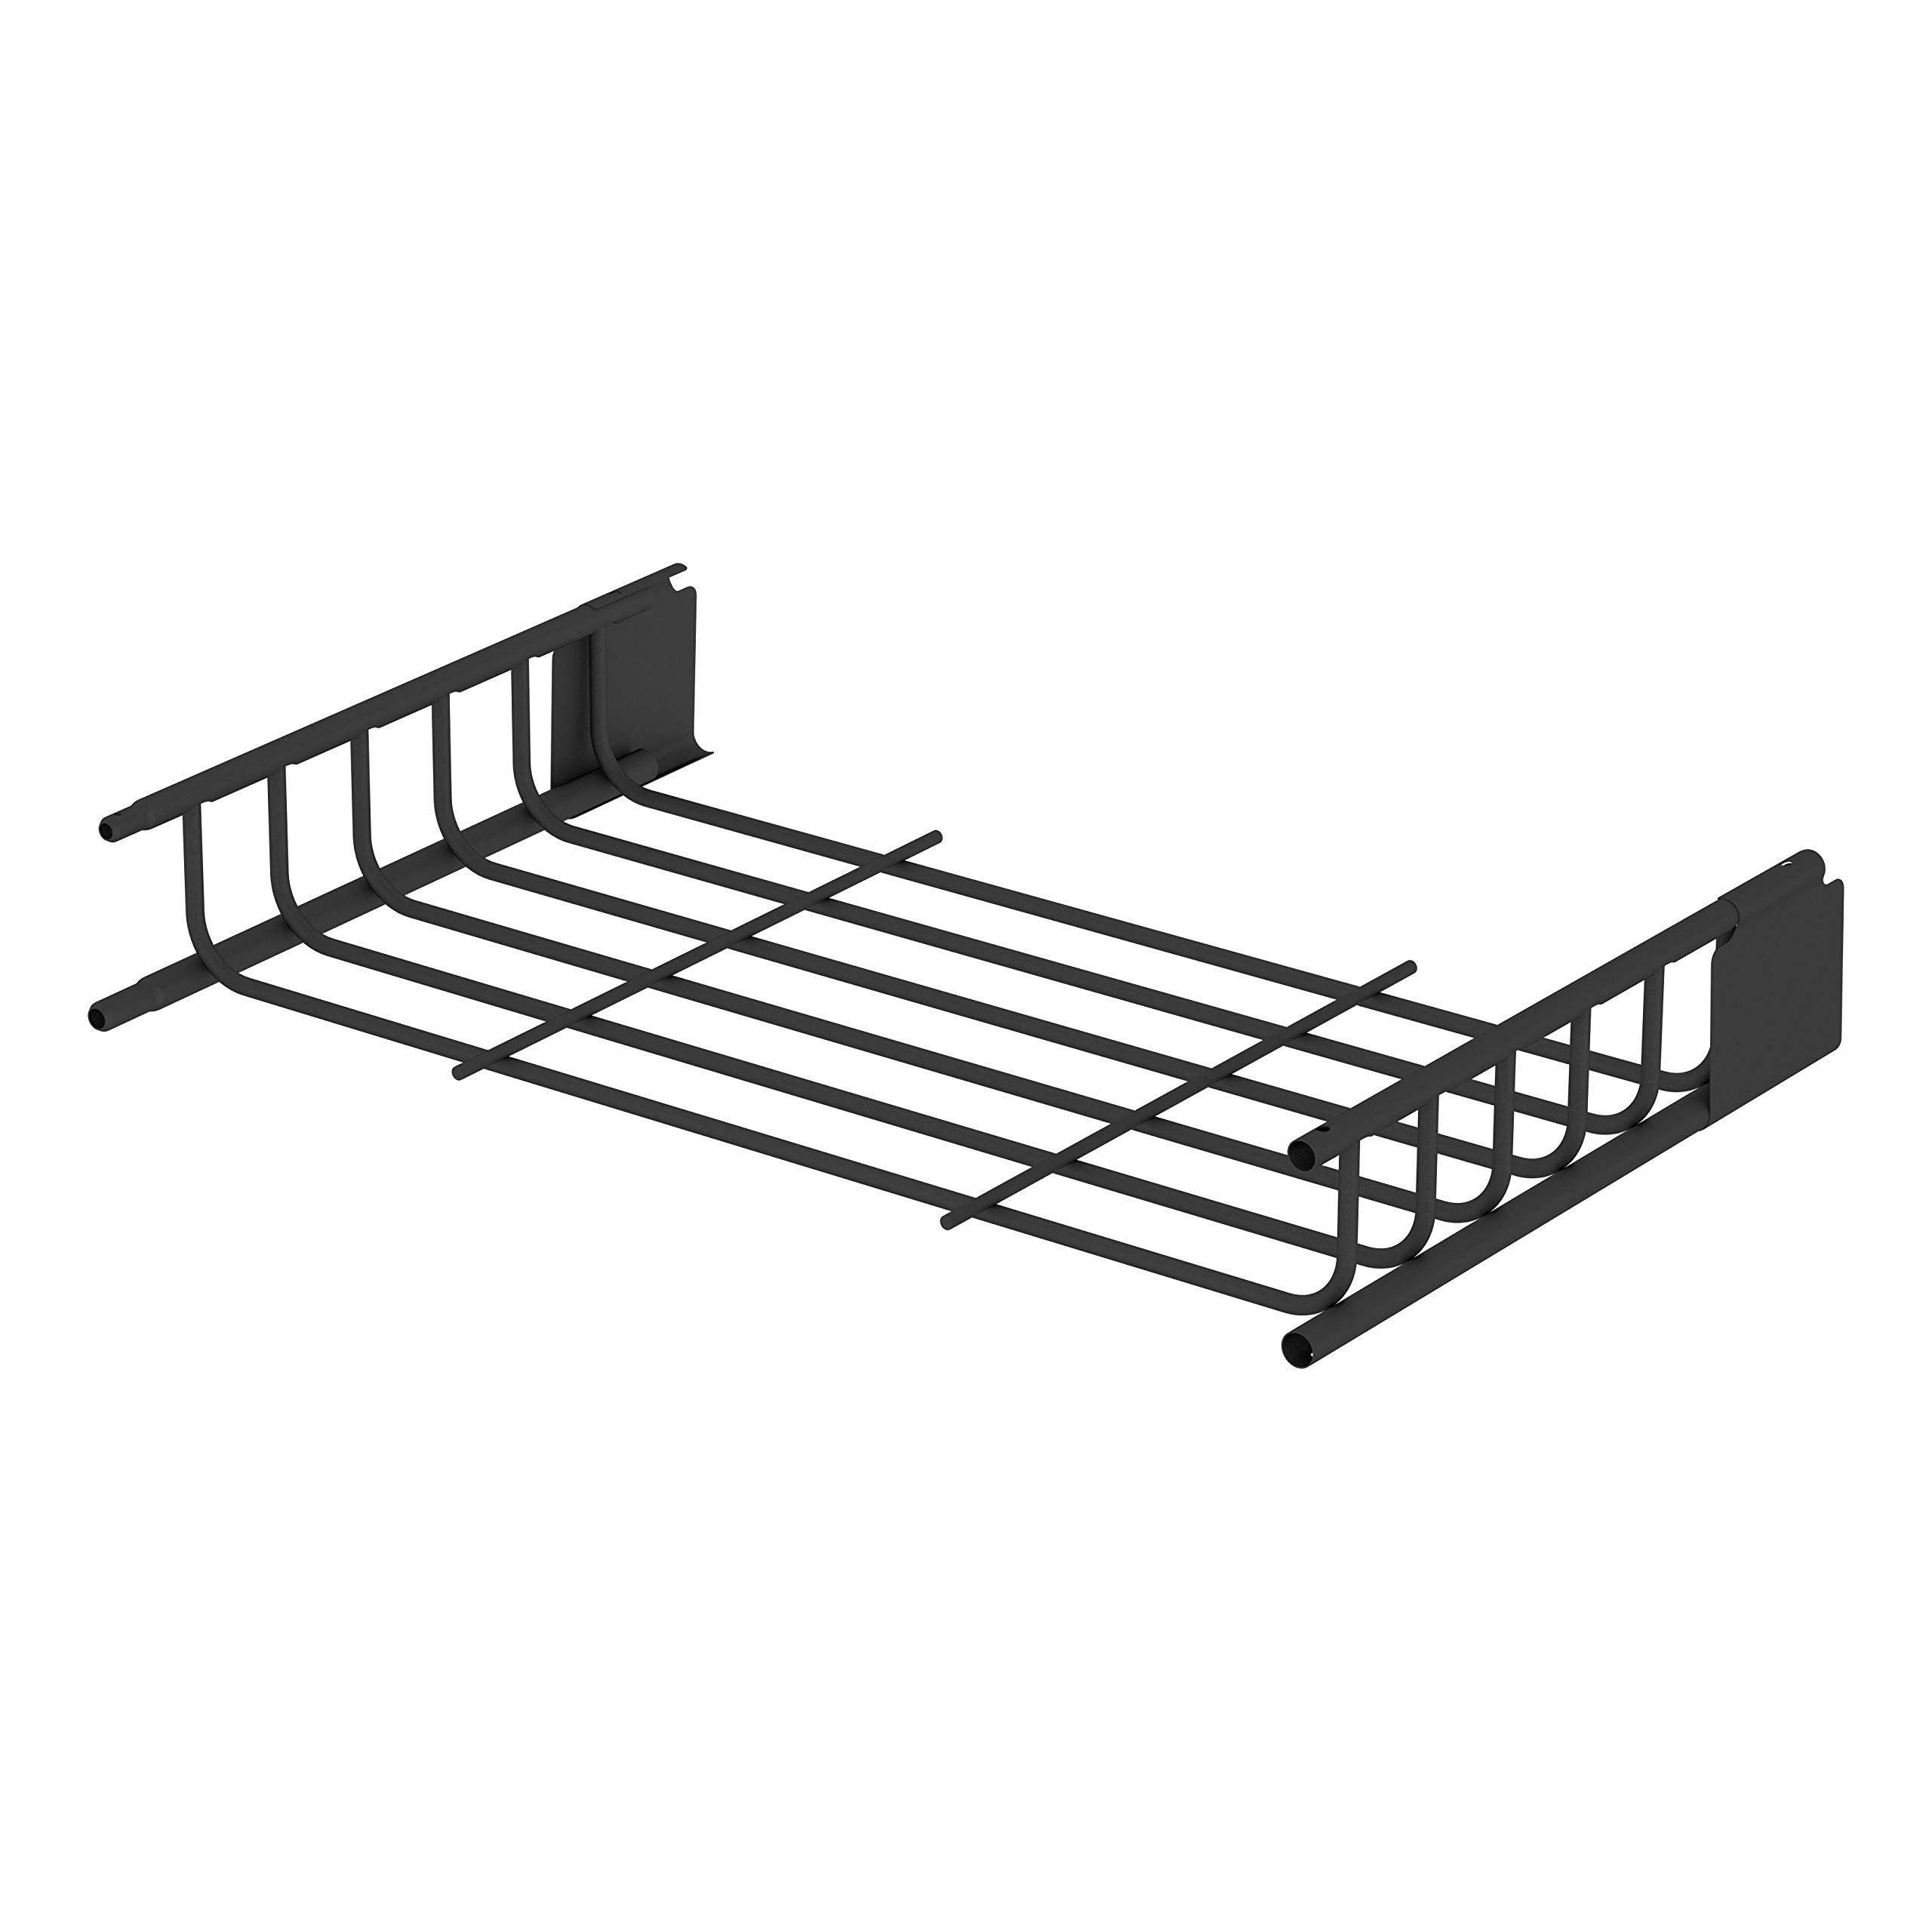 CURT 18117 Roof Rack Extension for CURT Rooftop Cargo Carrier, 21-Inch x 37-Inch x 4-Inch by CURT